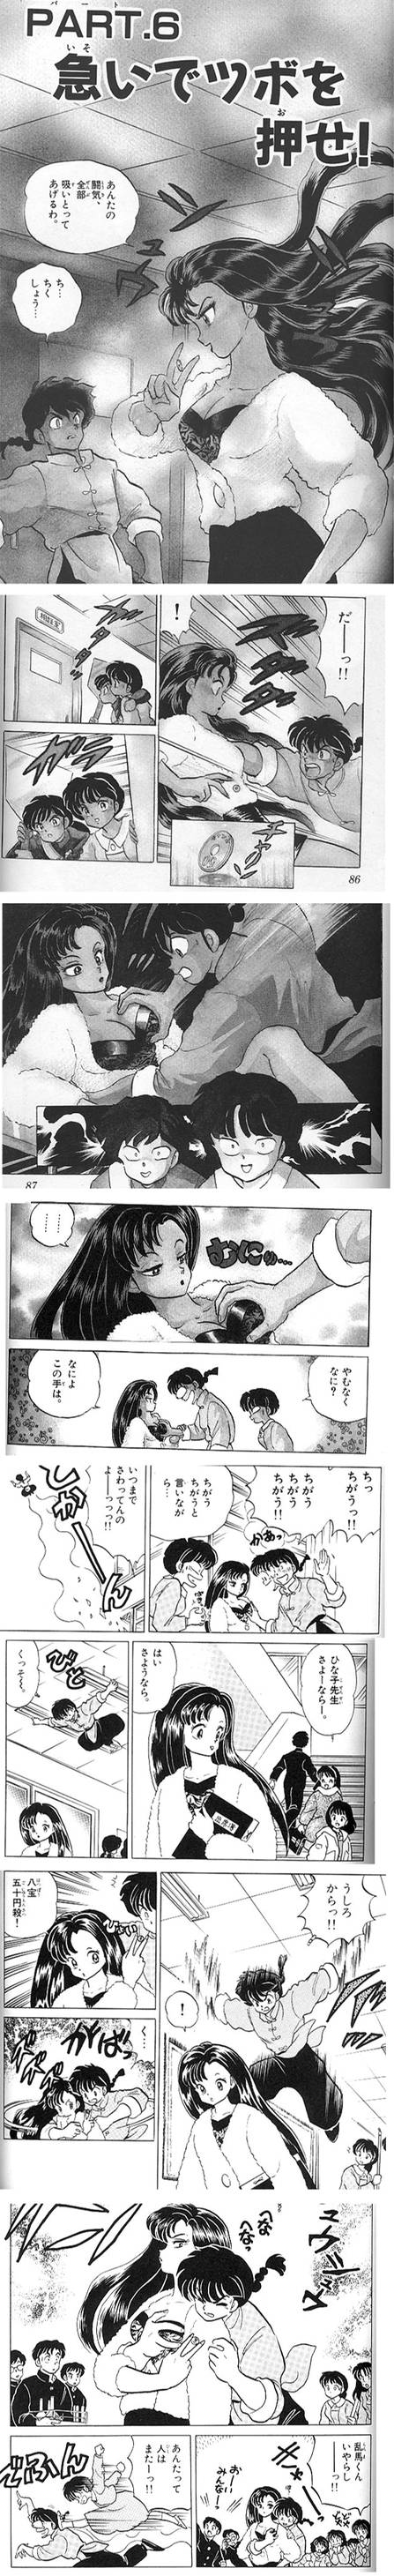 Anim Ranma Hinako11  ... push her Chi pressure points before she can transform into an adult.